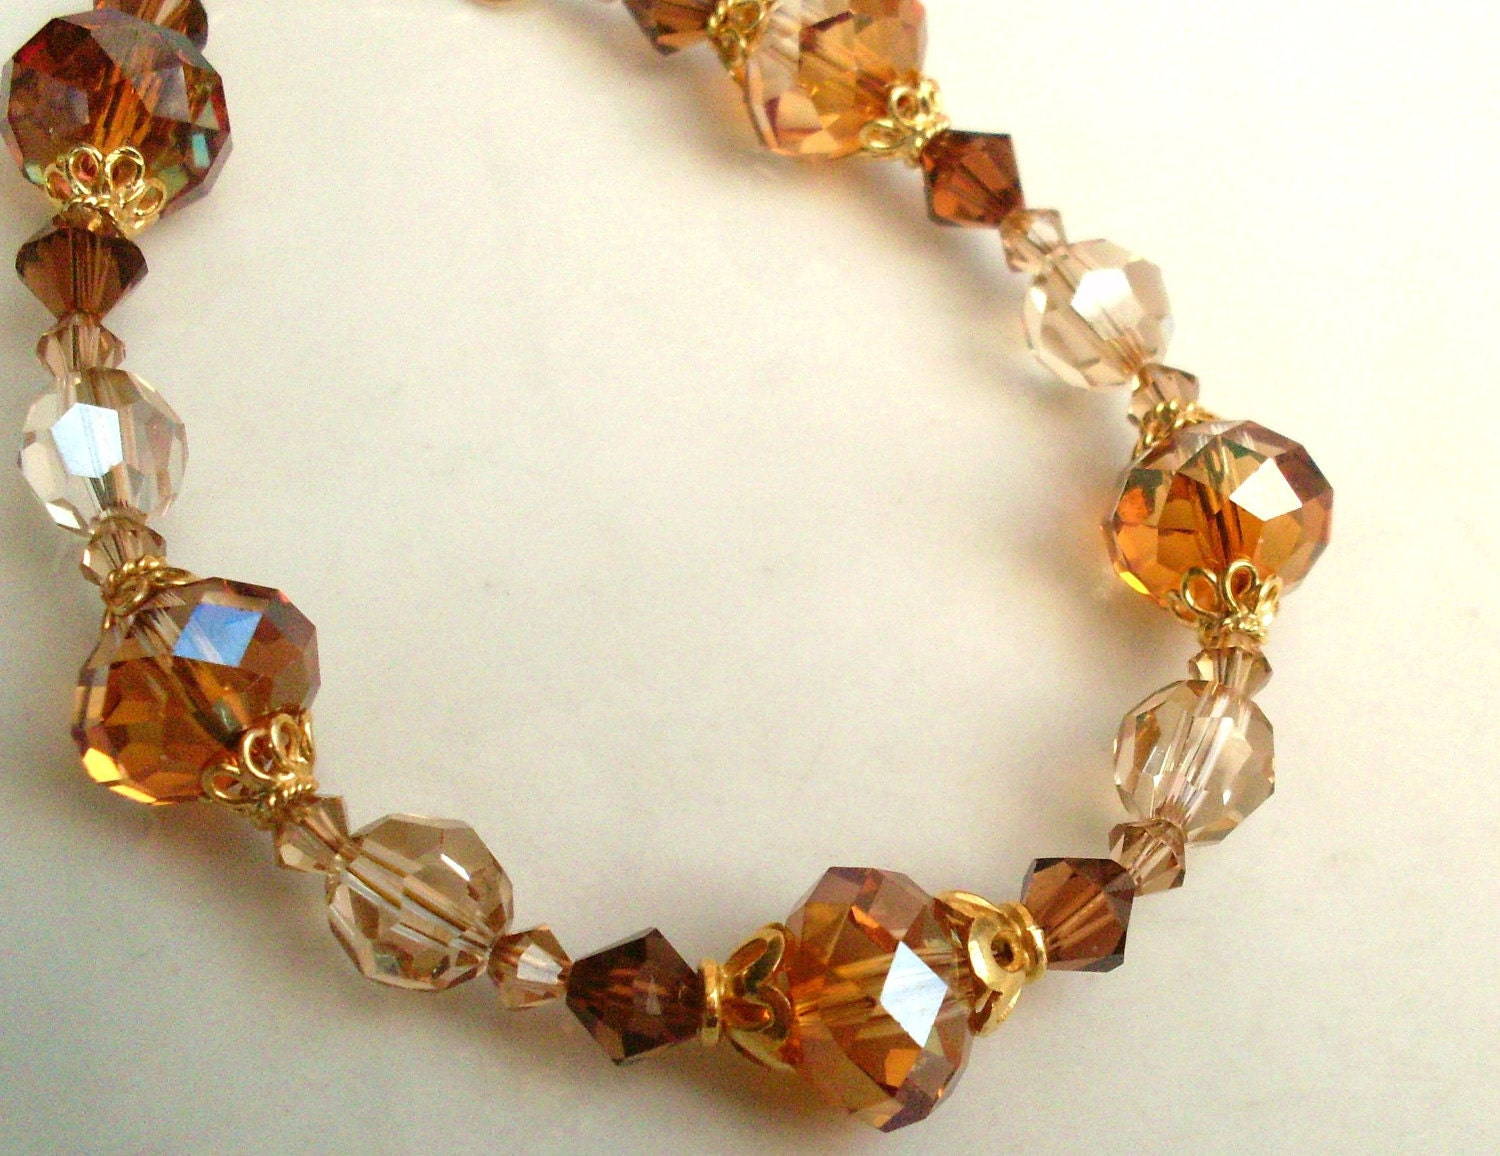 Austrian Crystal Bead Bracelet Golden Brown Colors Gold. Broad Bands. Sapphire And Diamond Anniversary Band. Ceramic Beads. Translucent Watches